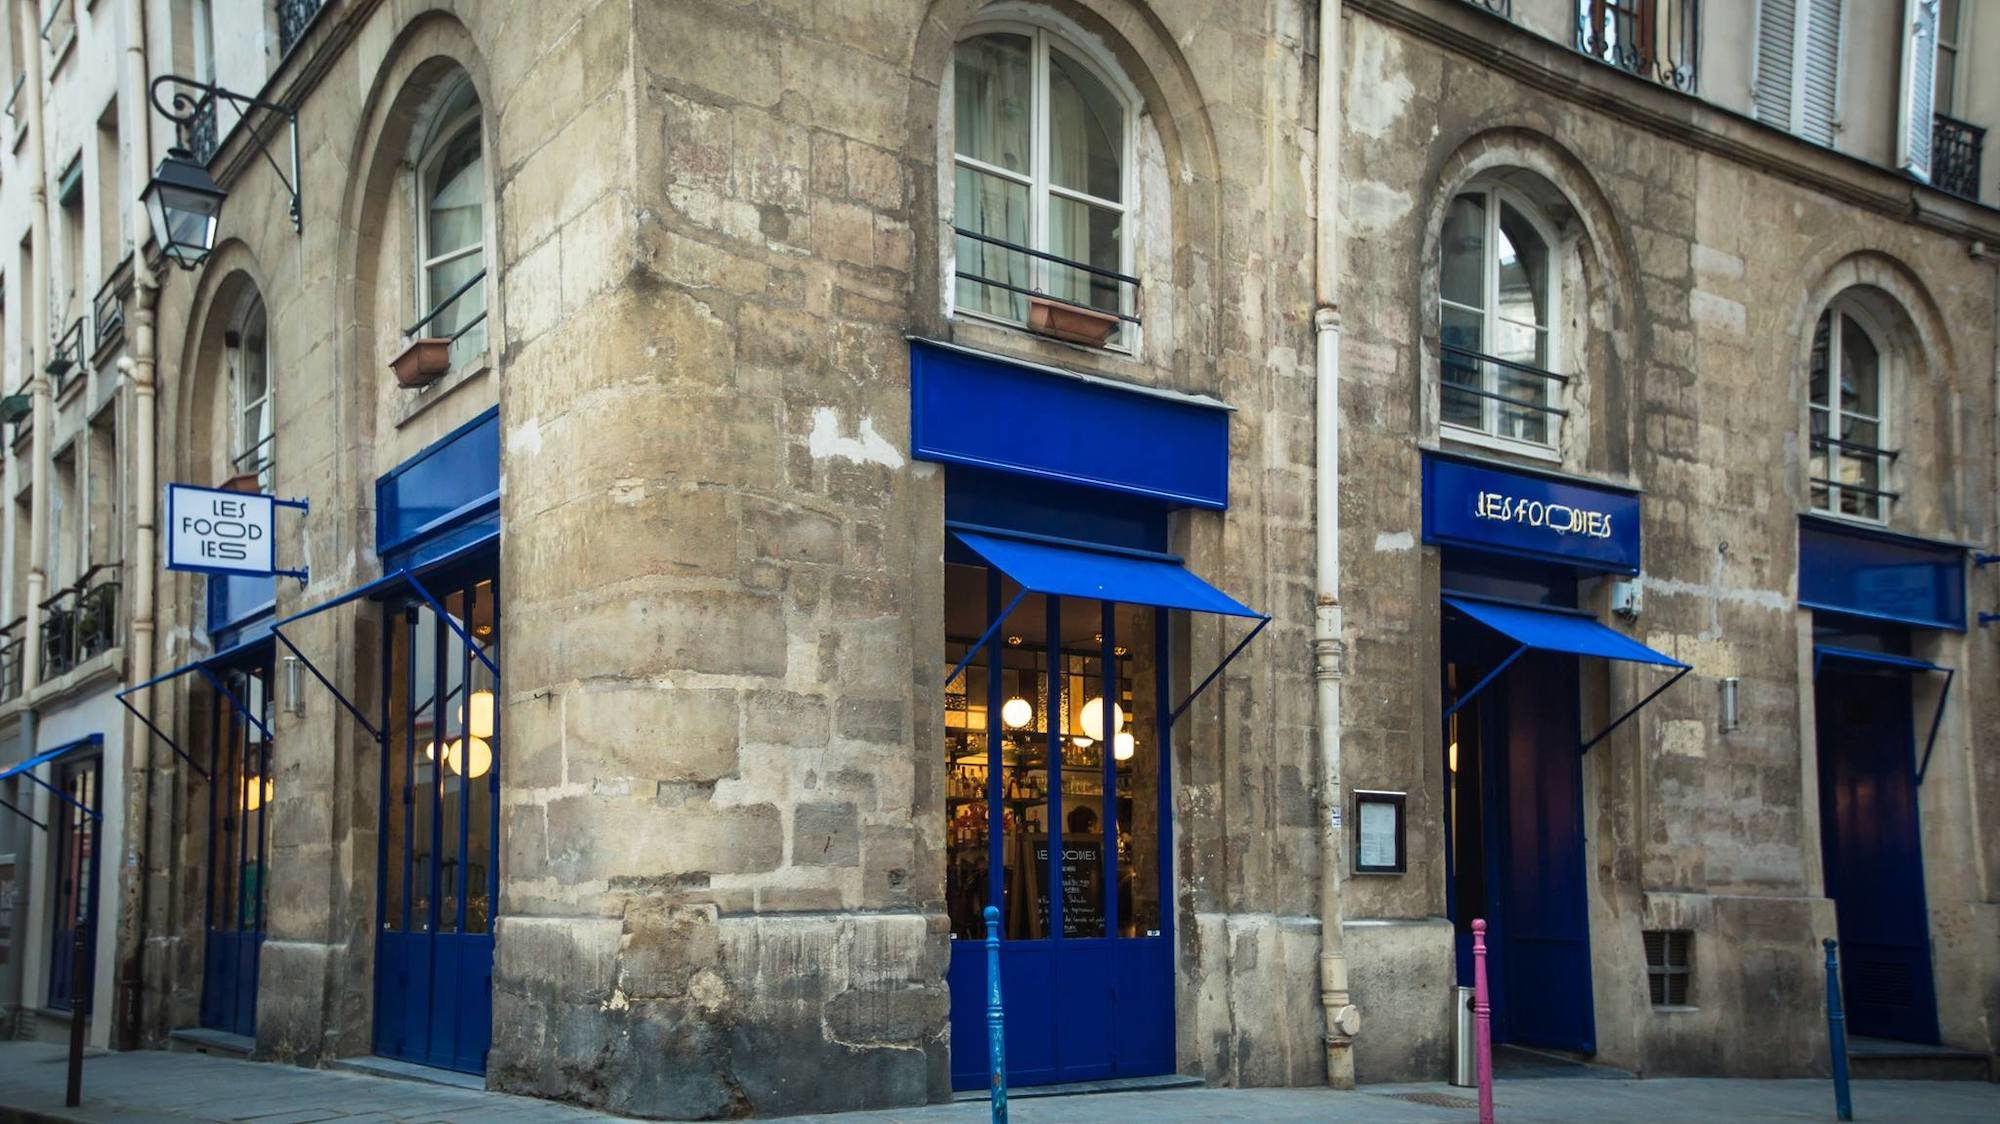 Les Foodies, which has just opened, is a contemporary restaurant in Paris.